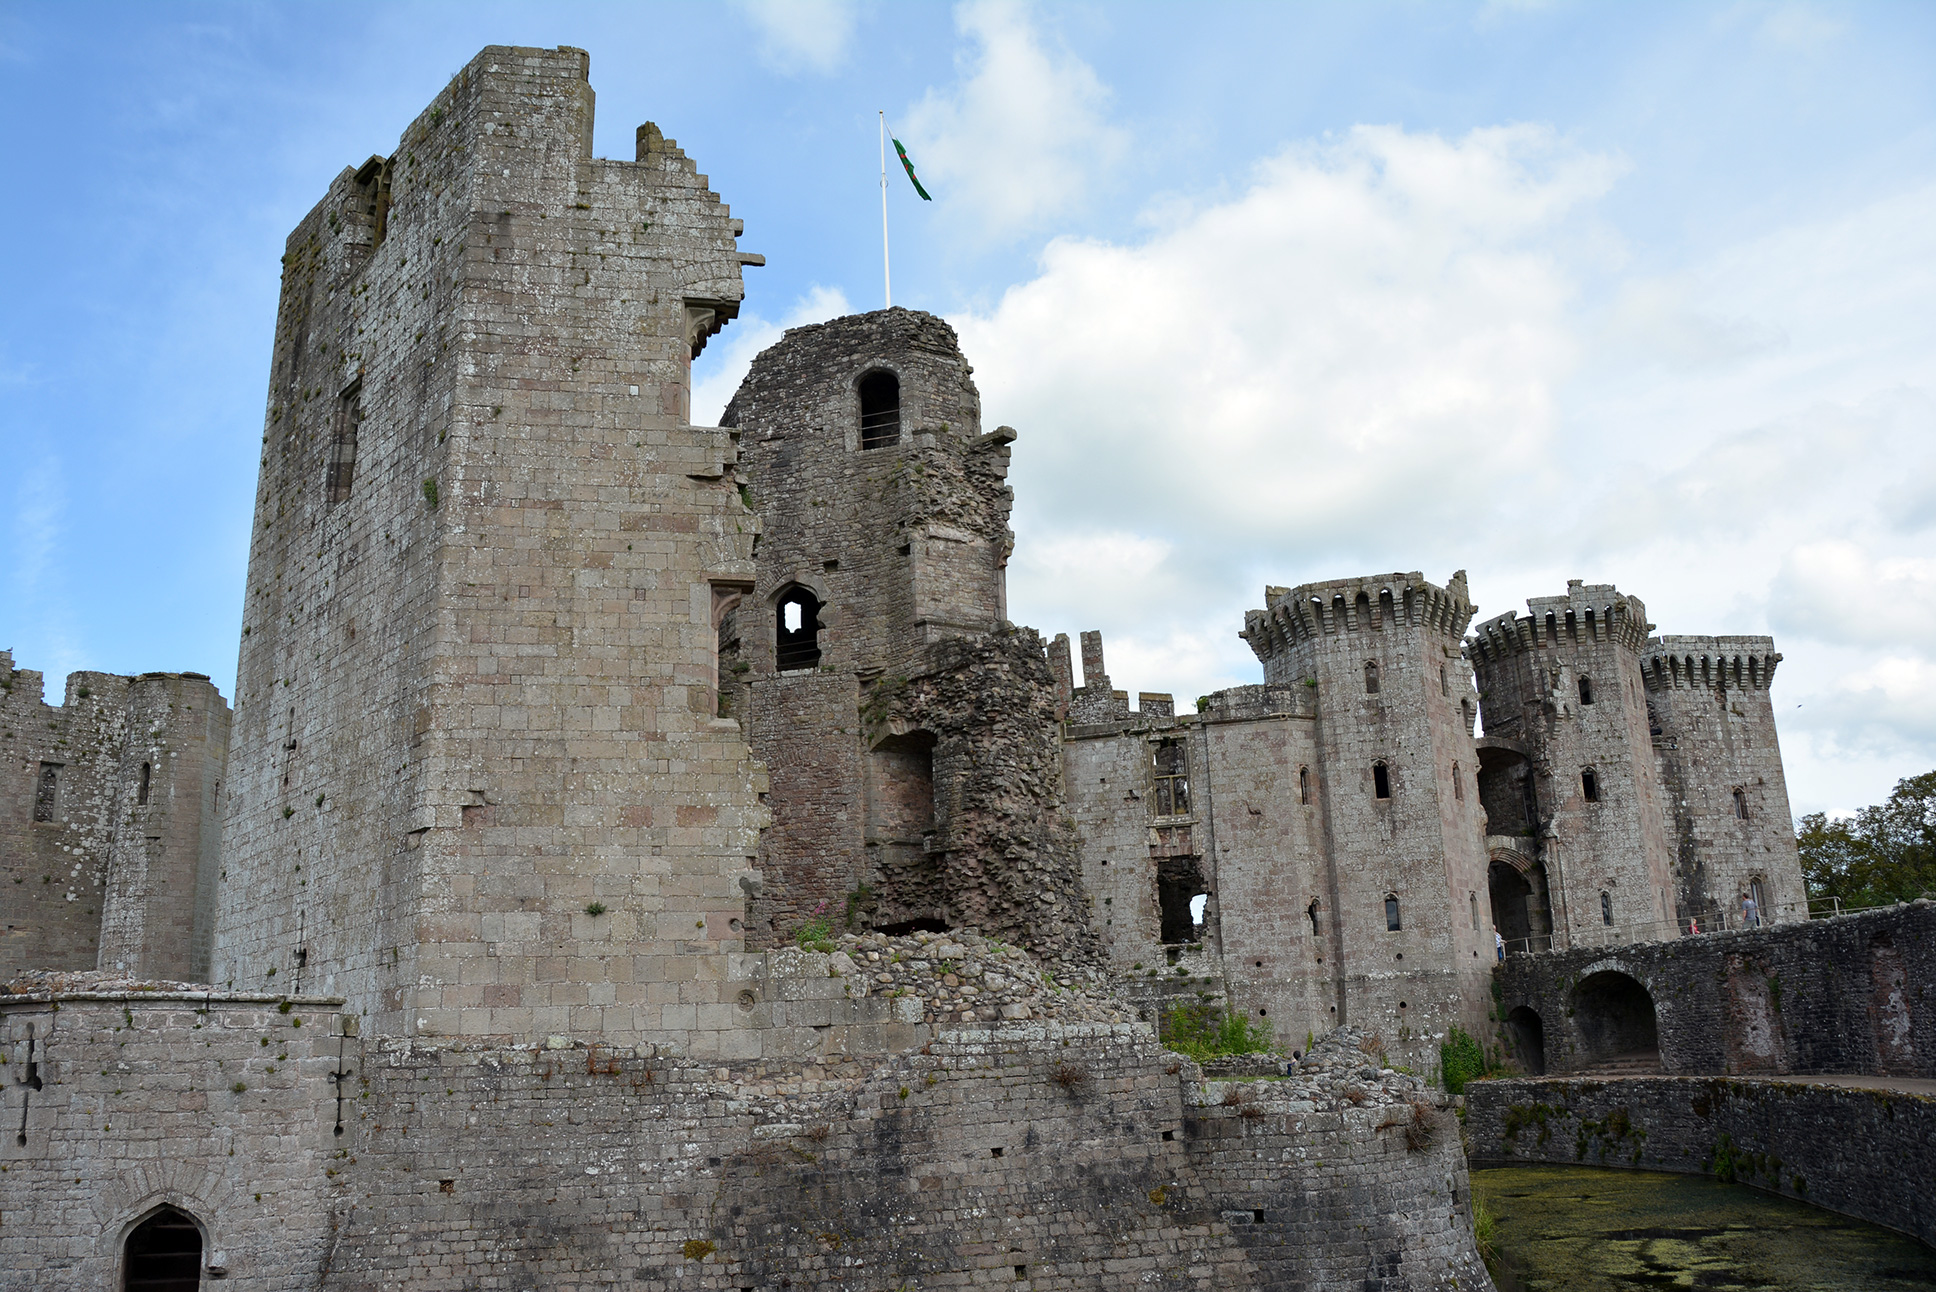 midieval castle essay Castles in the medieval times were very uncomfortable and hardships were plenty a castle had no central heating the main fireplace heat was saved for the lord and the lady.